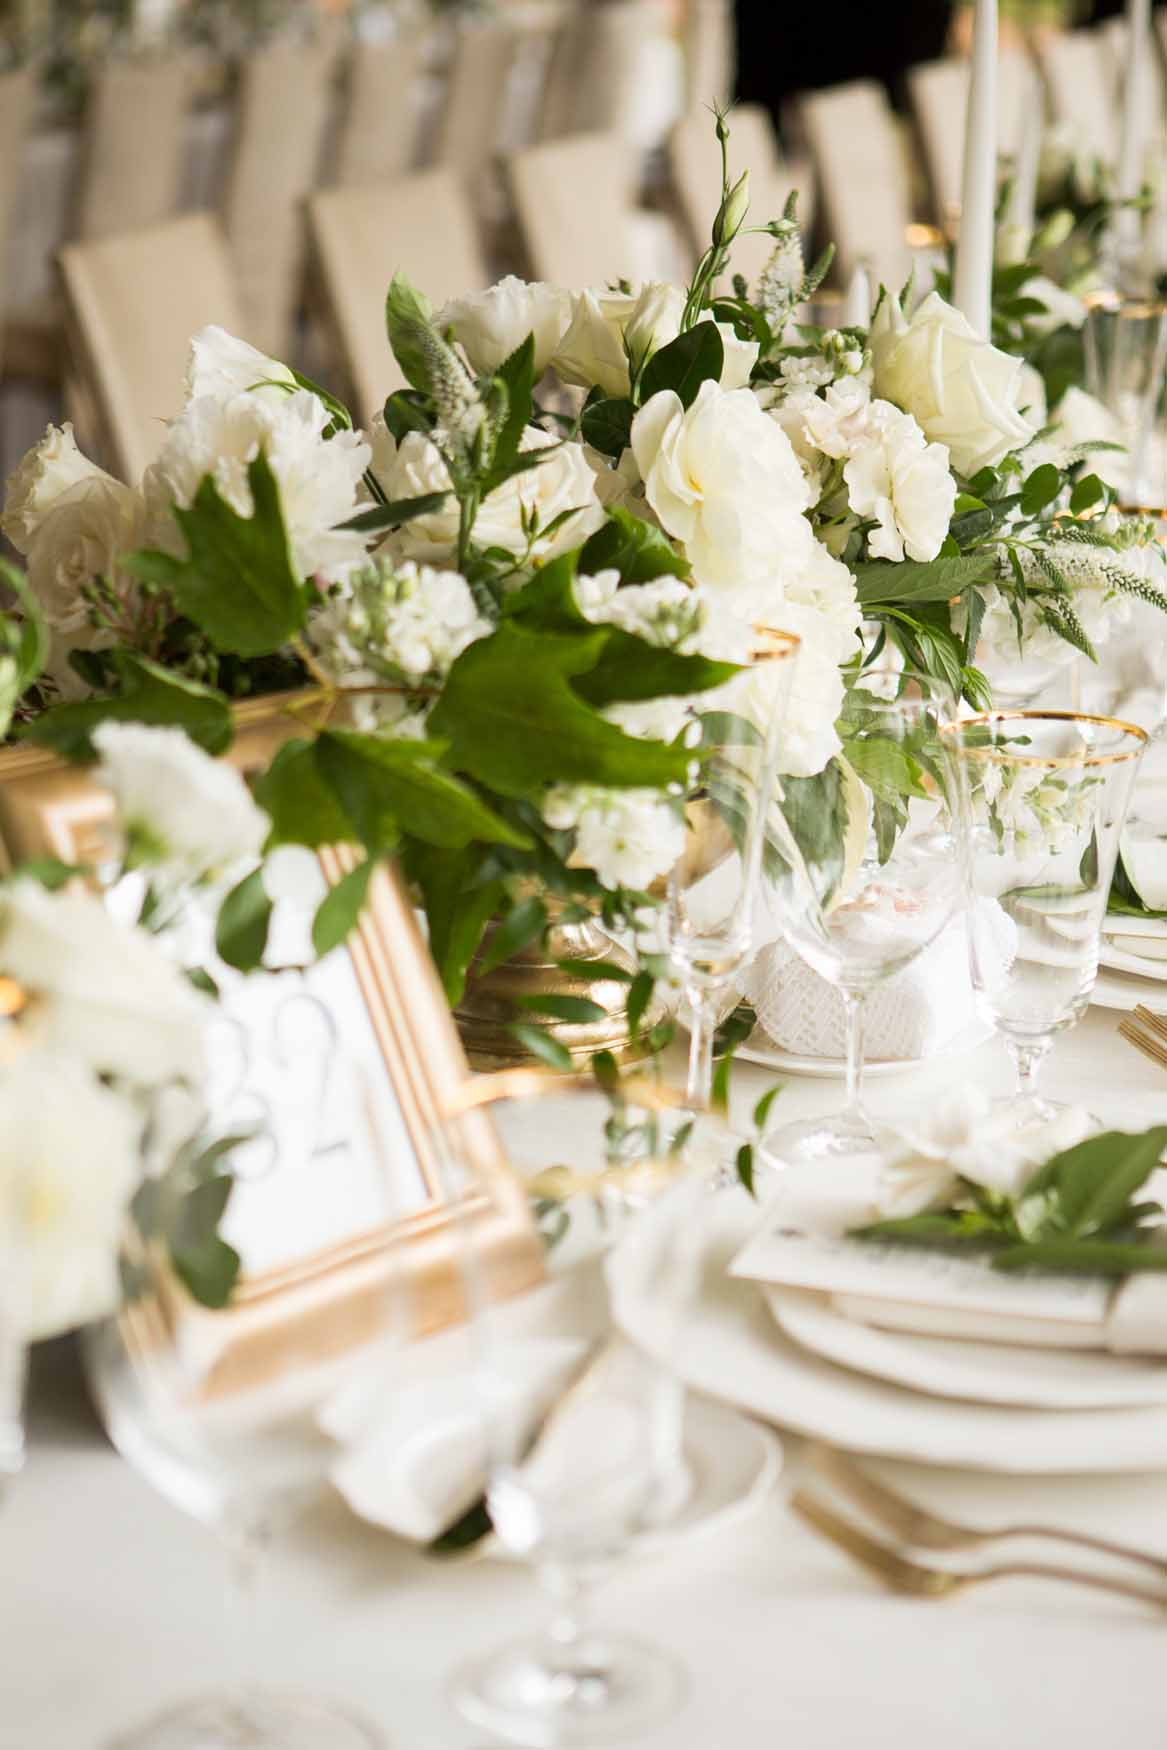 Centerpieces with white flowers on long tables - Elegant Summer Private Estate Wedding. Flora Nova Design Seattle